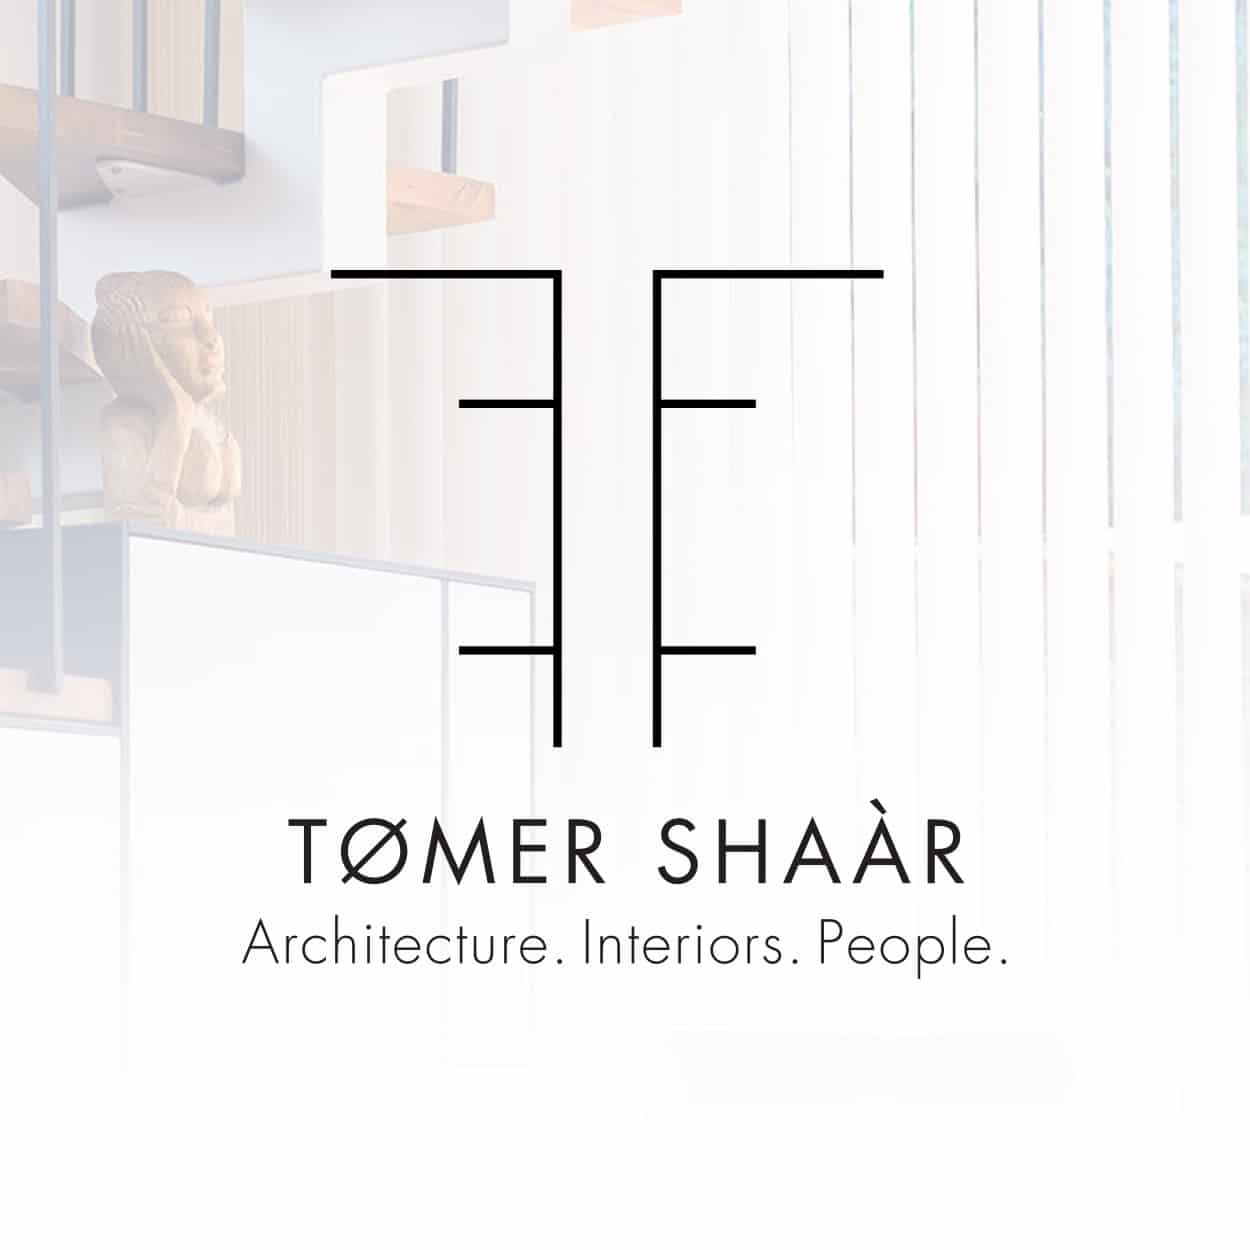 Let's Design Studio Nadia Ornstein -Tomer Shaar Architecture Interiors People Branding Visual Language